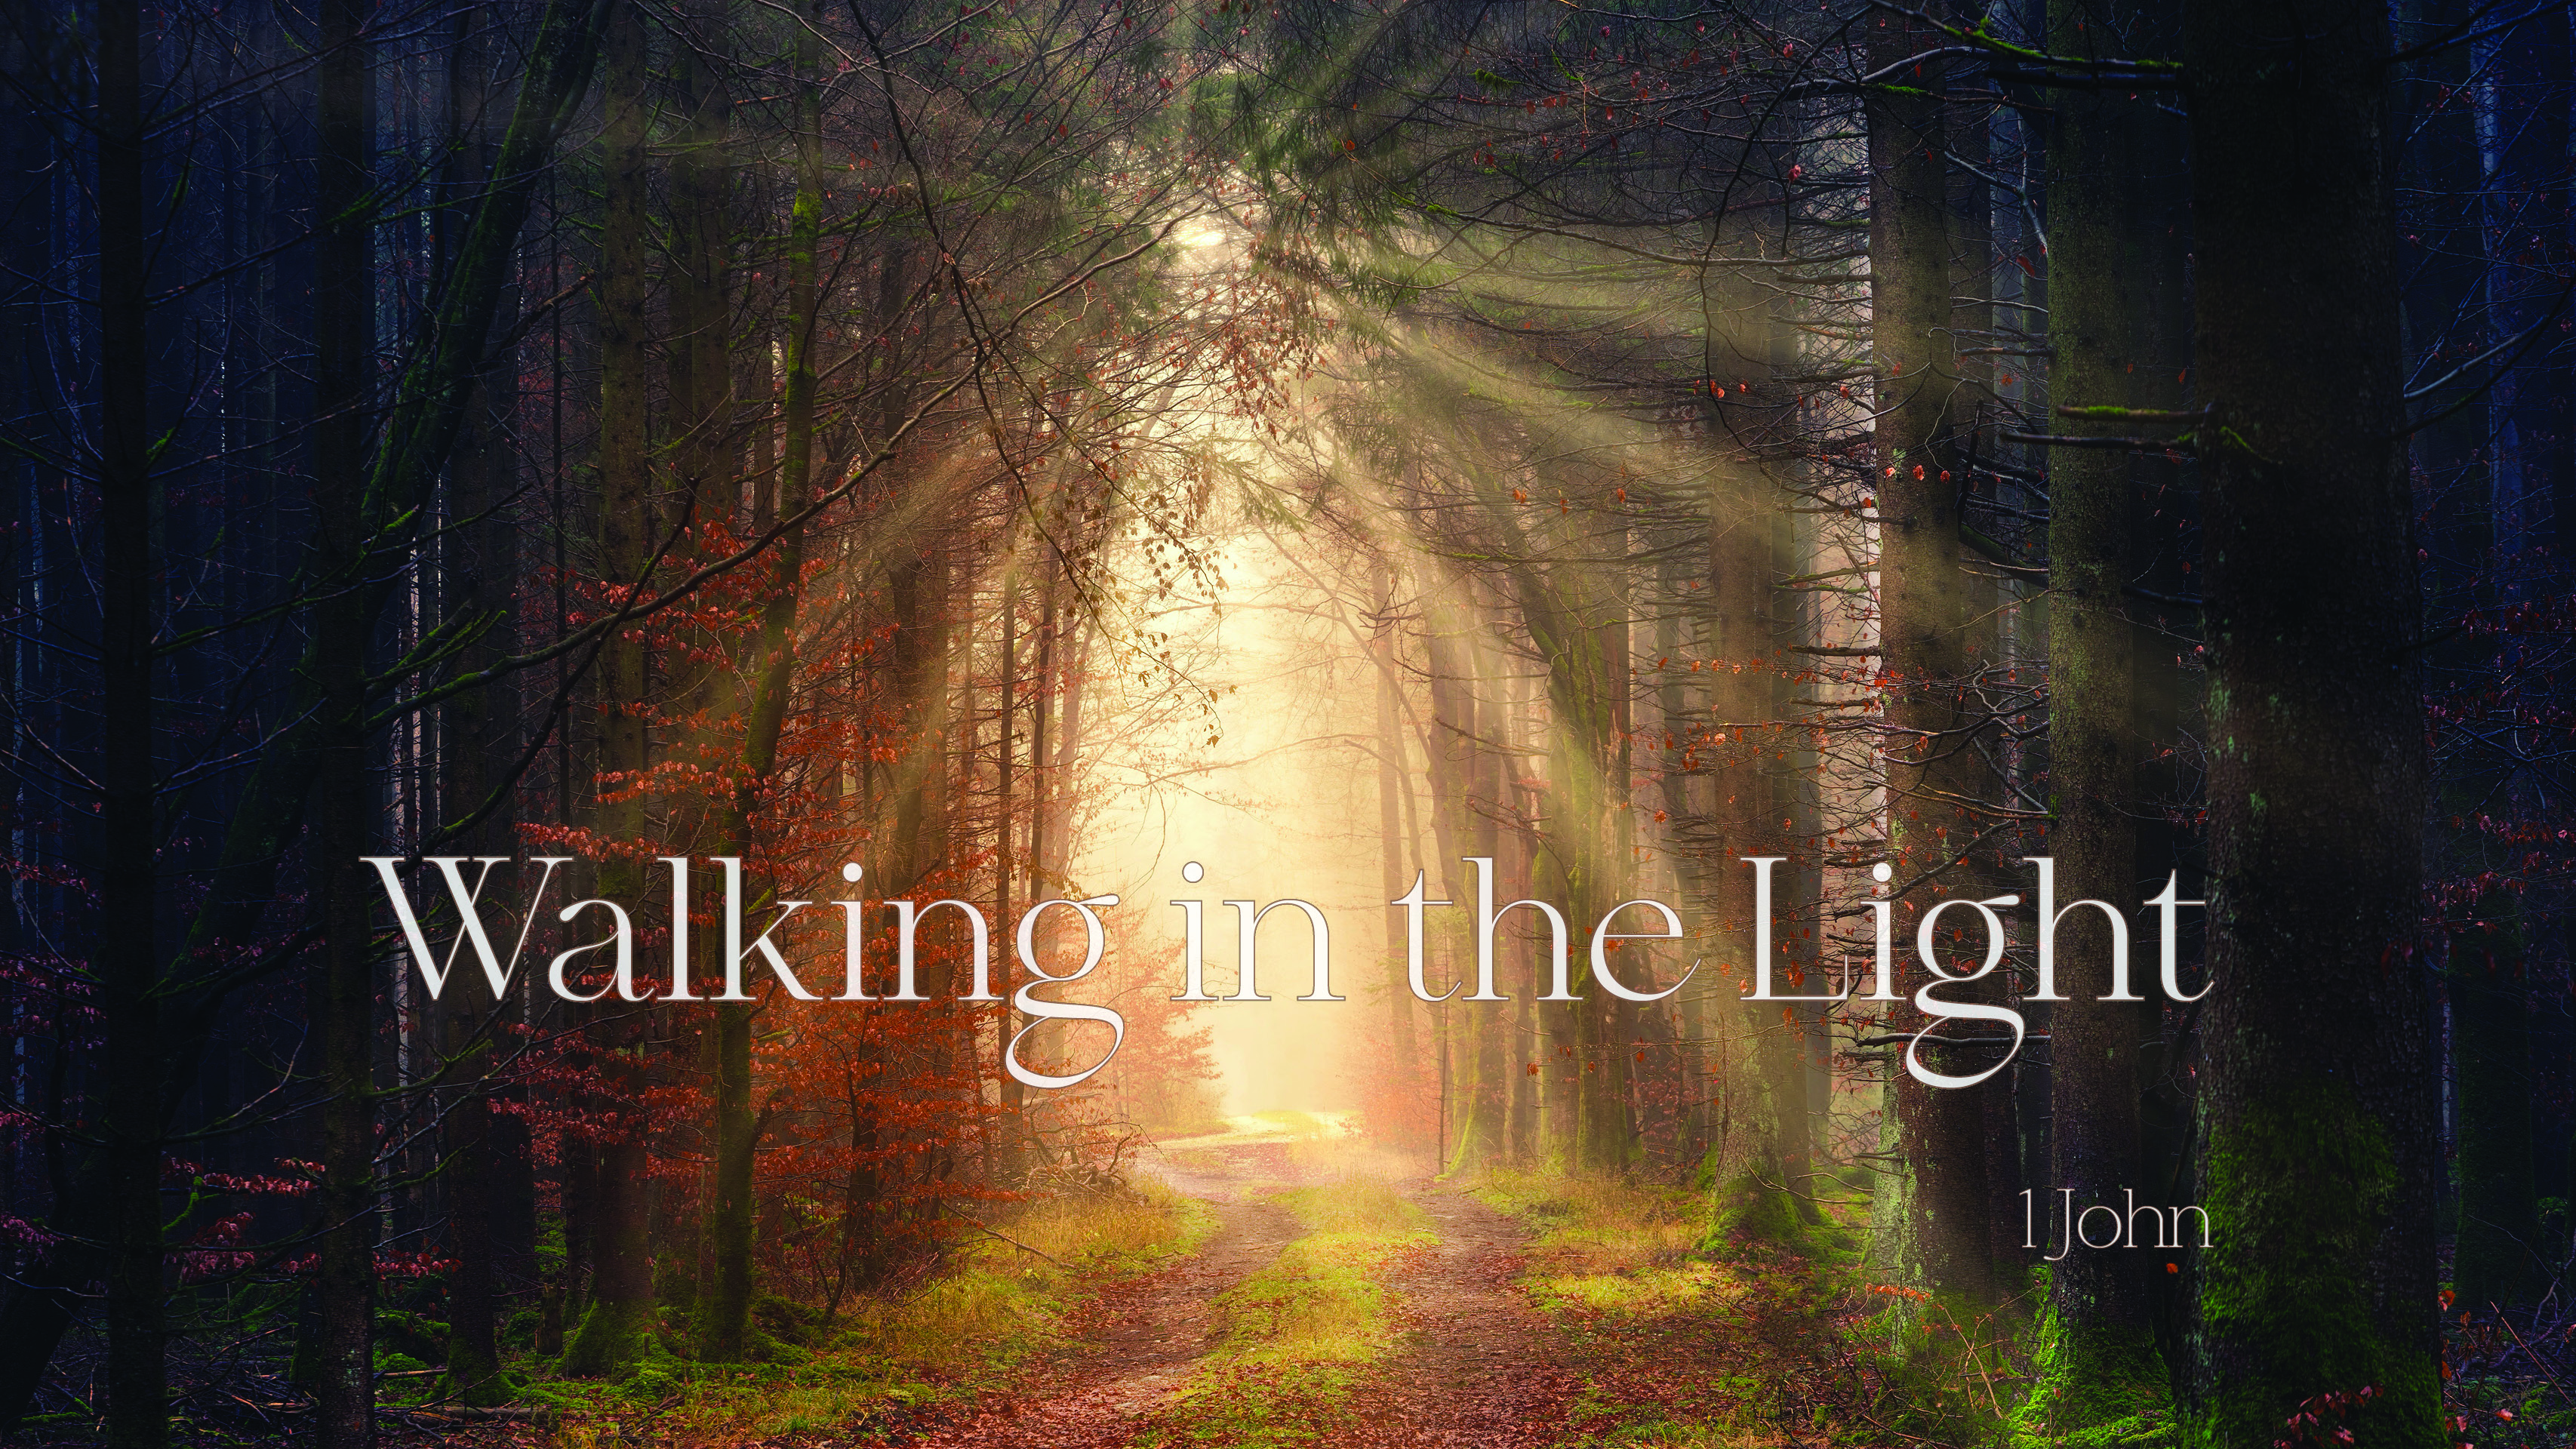 Walking in the Light - The Walk of a Christian